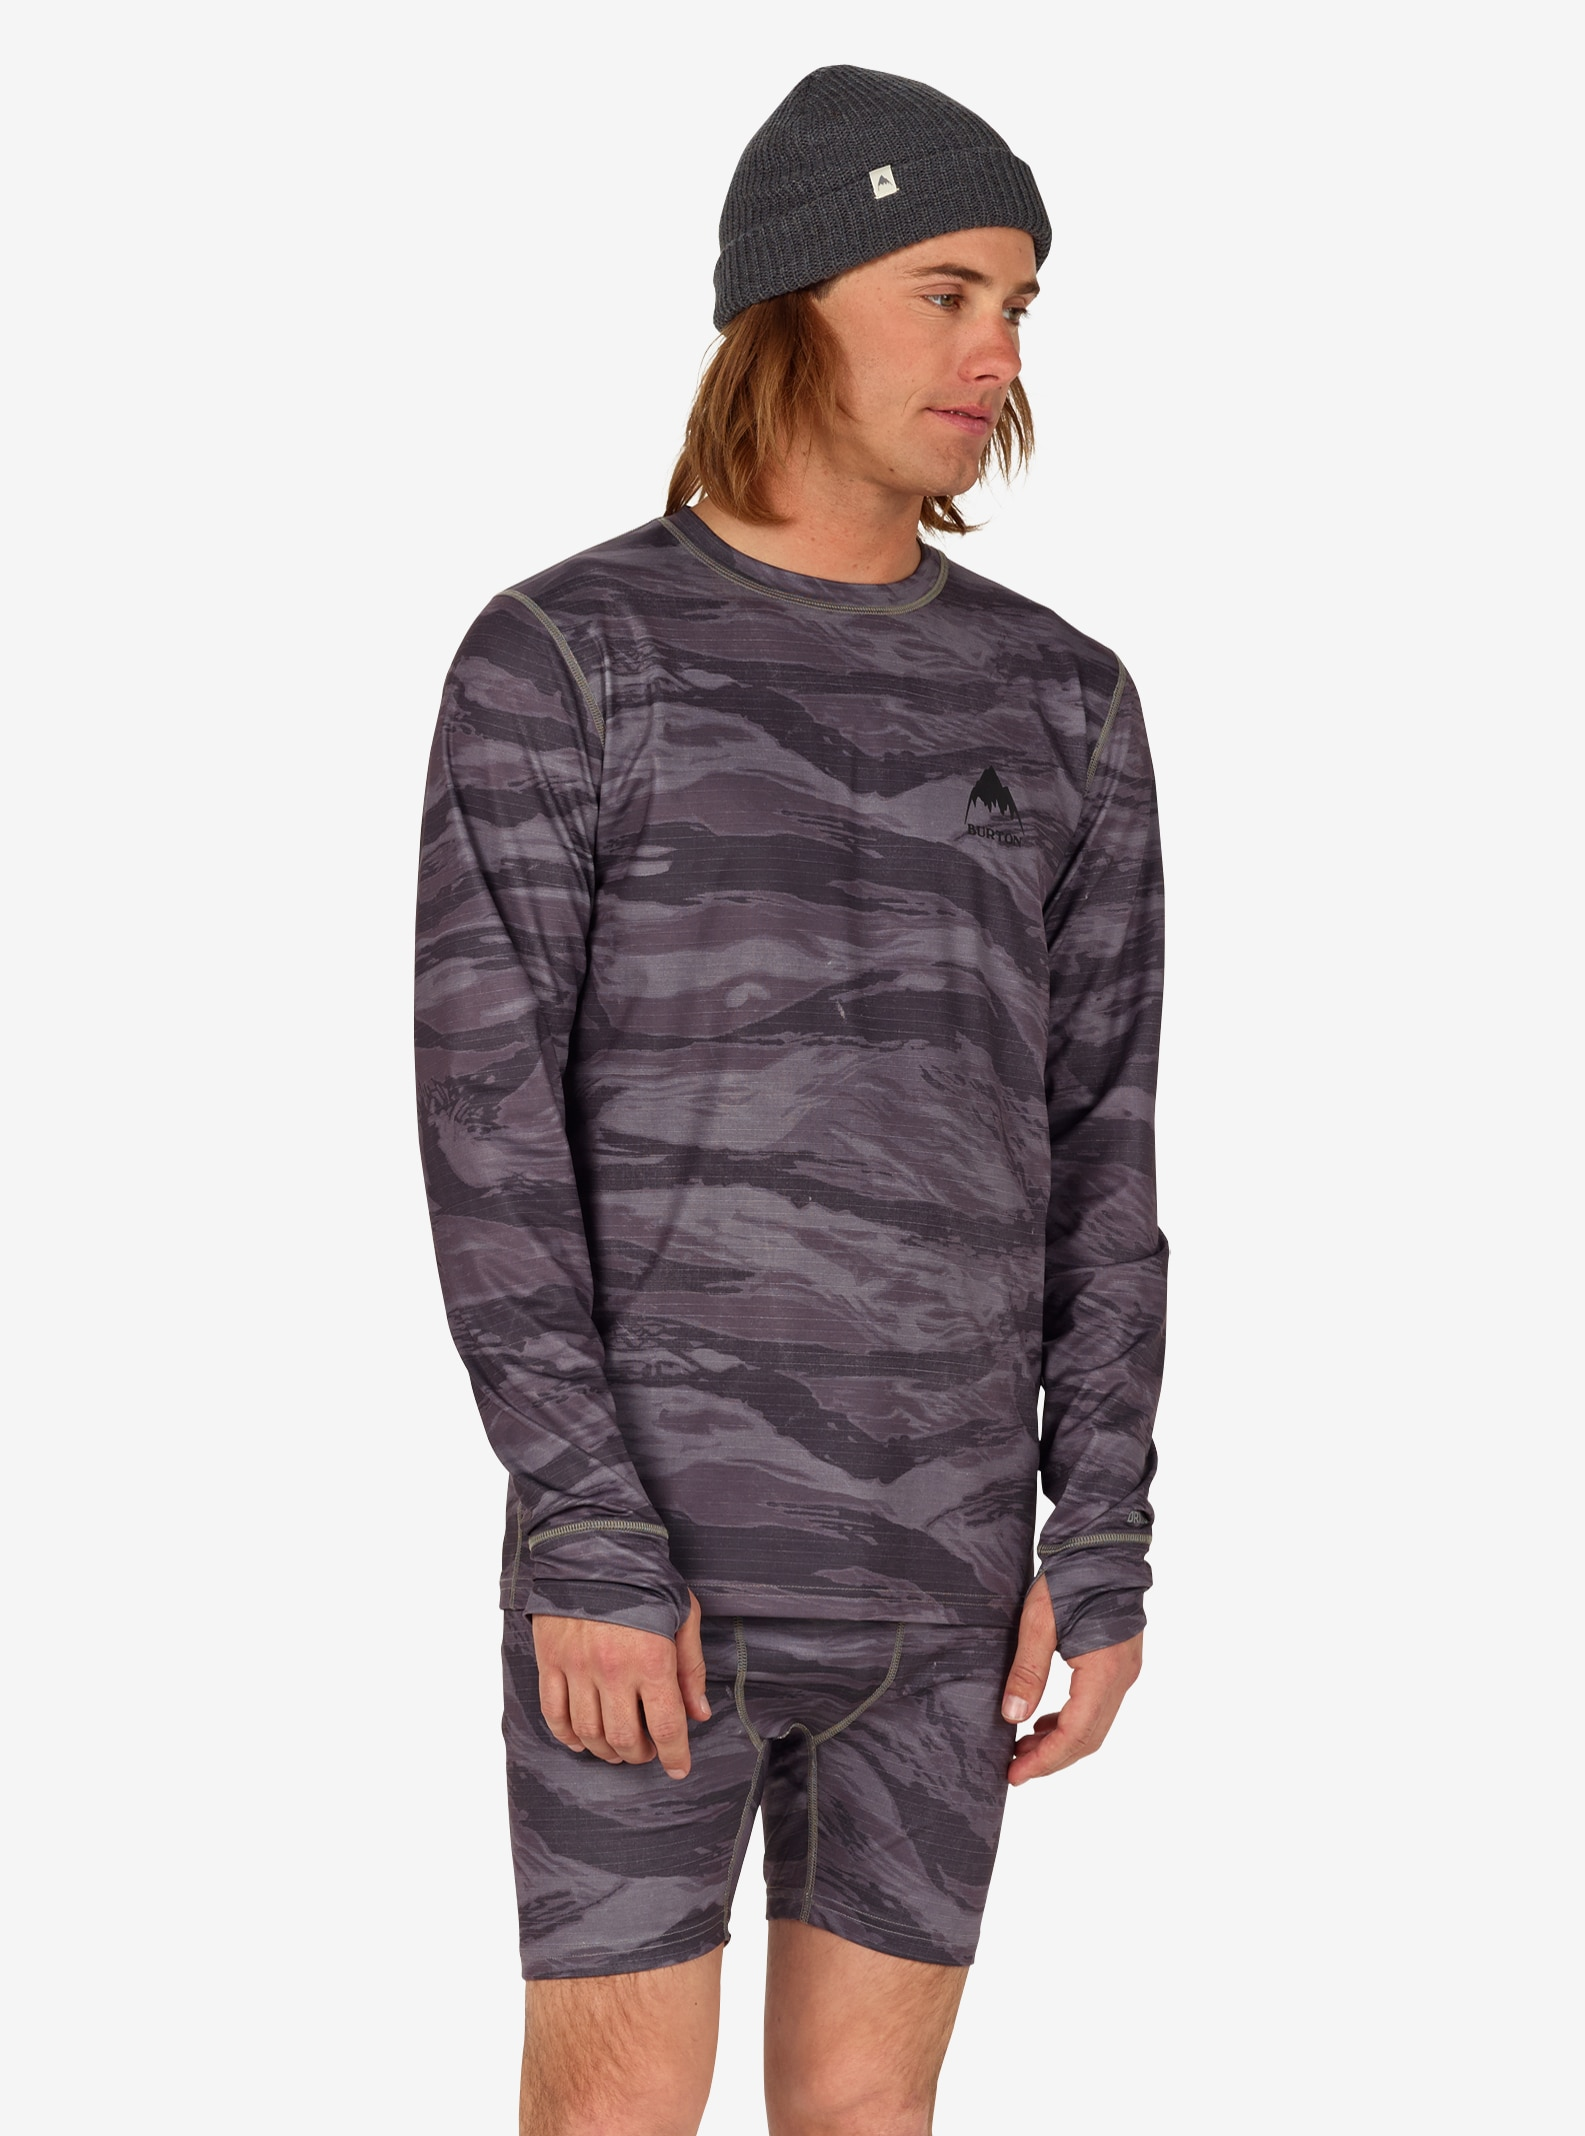 Men's Burton Lightweight Base Layer Crew shown in Faded Worn Tiger